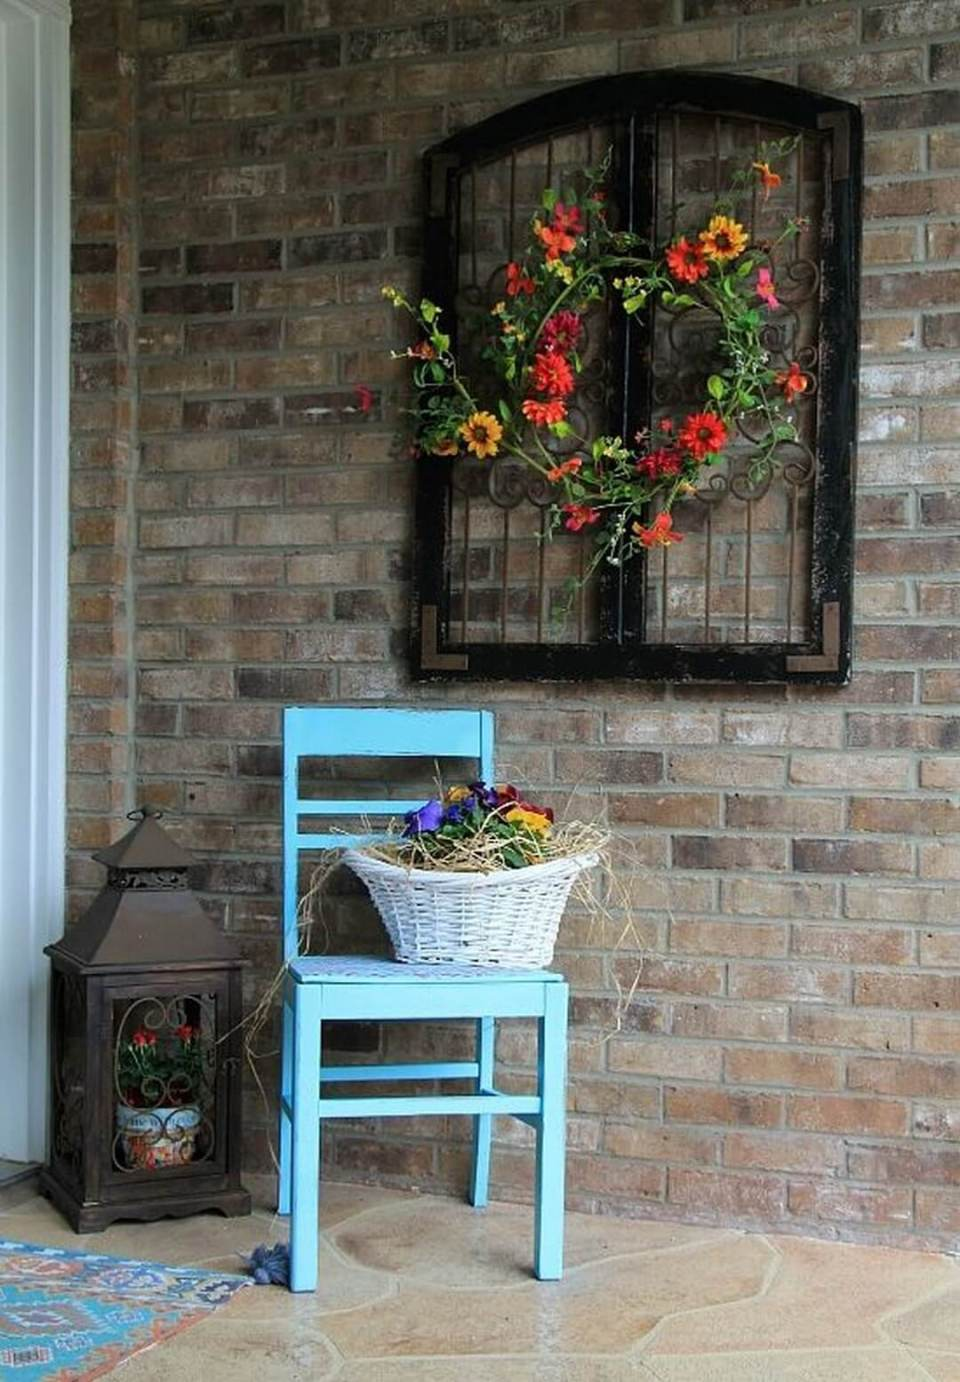 Elegant Upcycled Lead Window Accent | Vintage Porch Decor Ideas